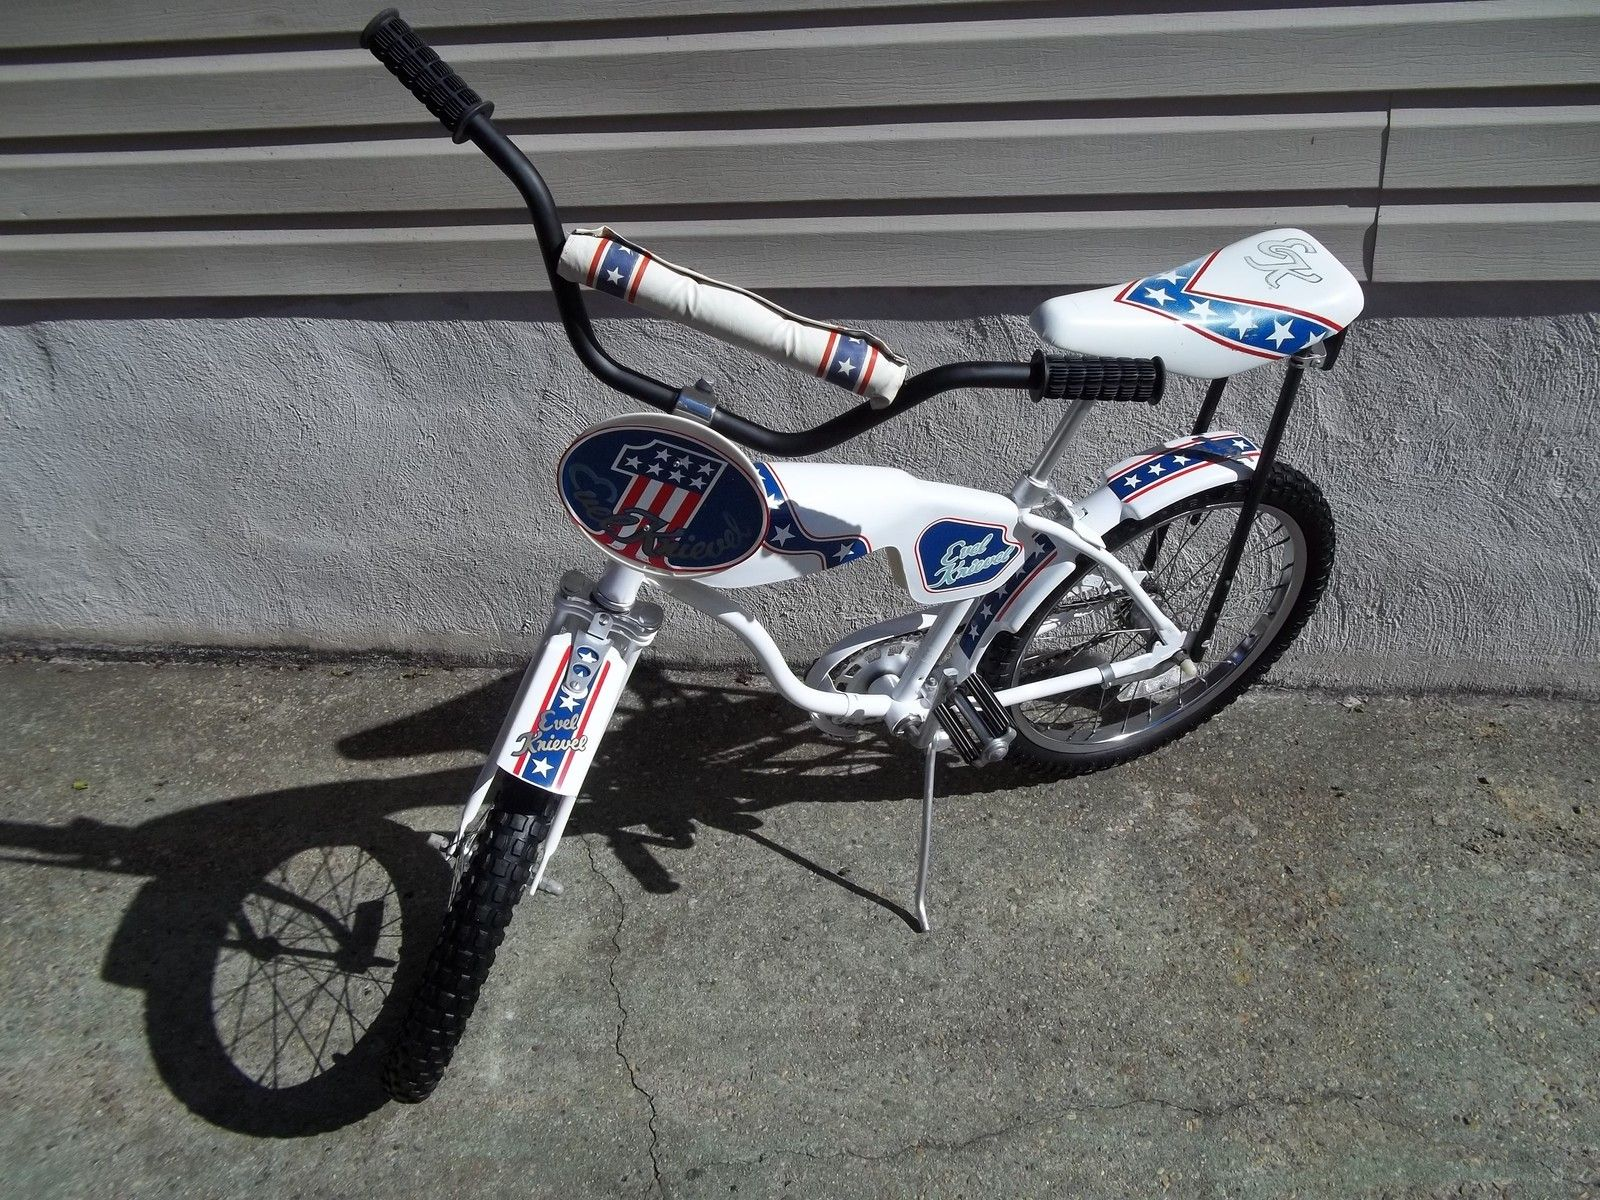 Evel Knievel S 1976 Harley Davidson Xl1000 Is For Sale: Details About 1980s Huffy Thunder Evel Knievel Bicycle 20